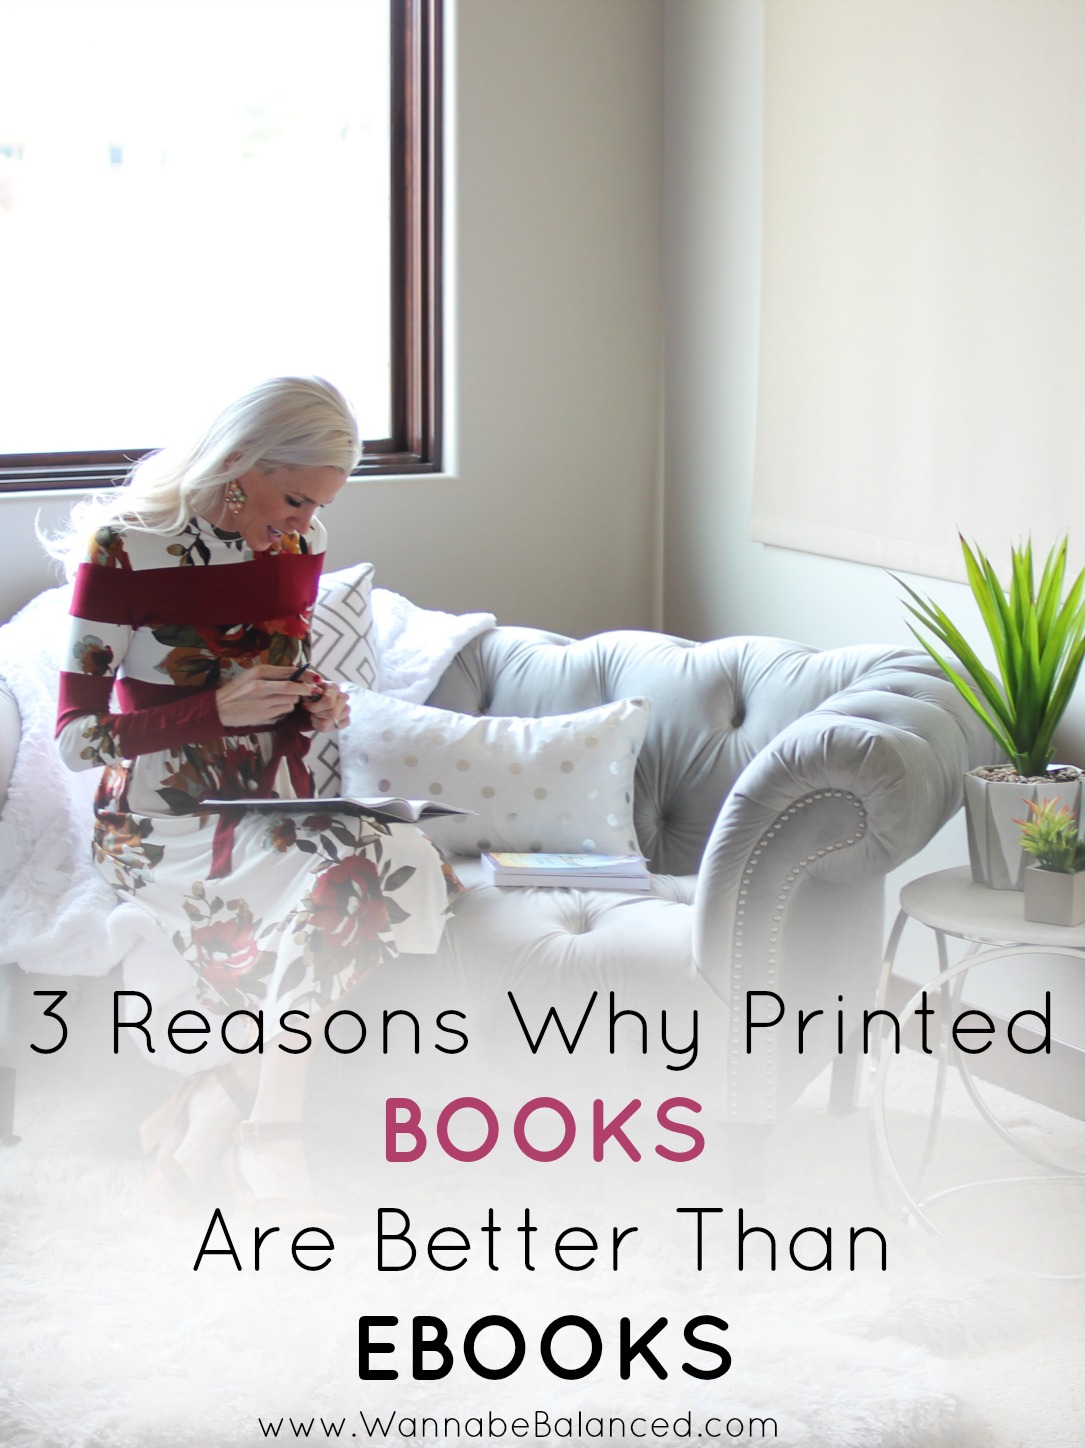 Printed Books vs Ebooks: 3 Reasons Why Printed Books Are Better